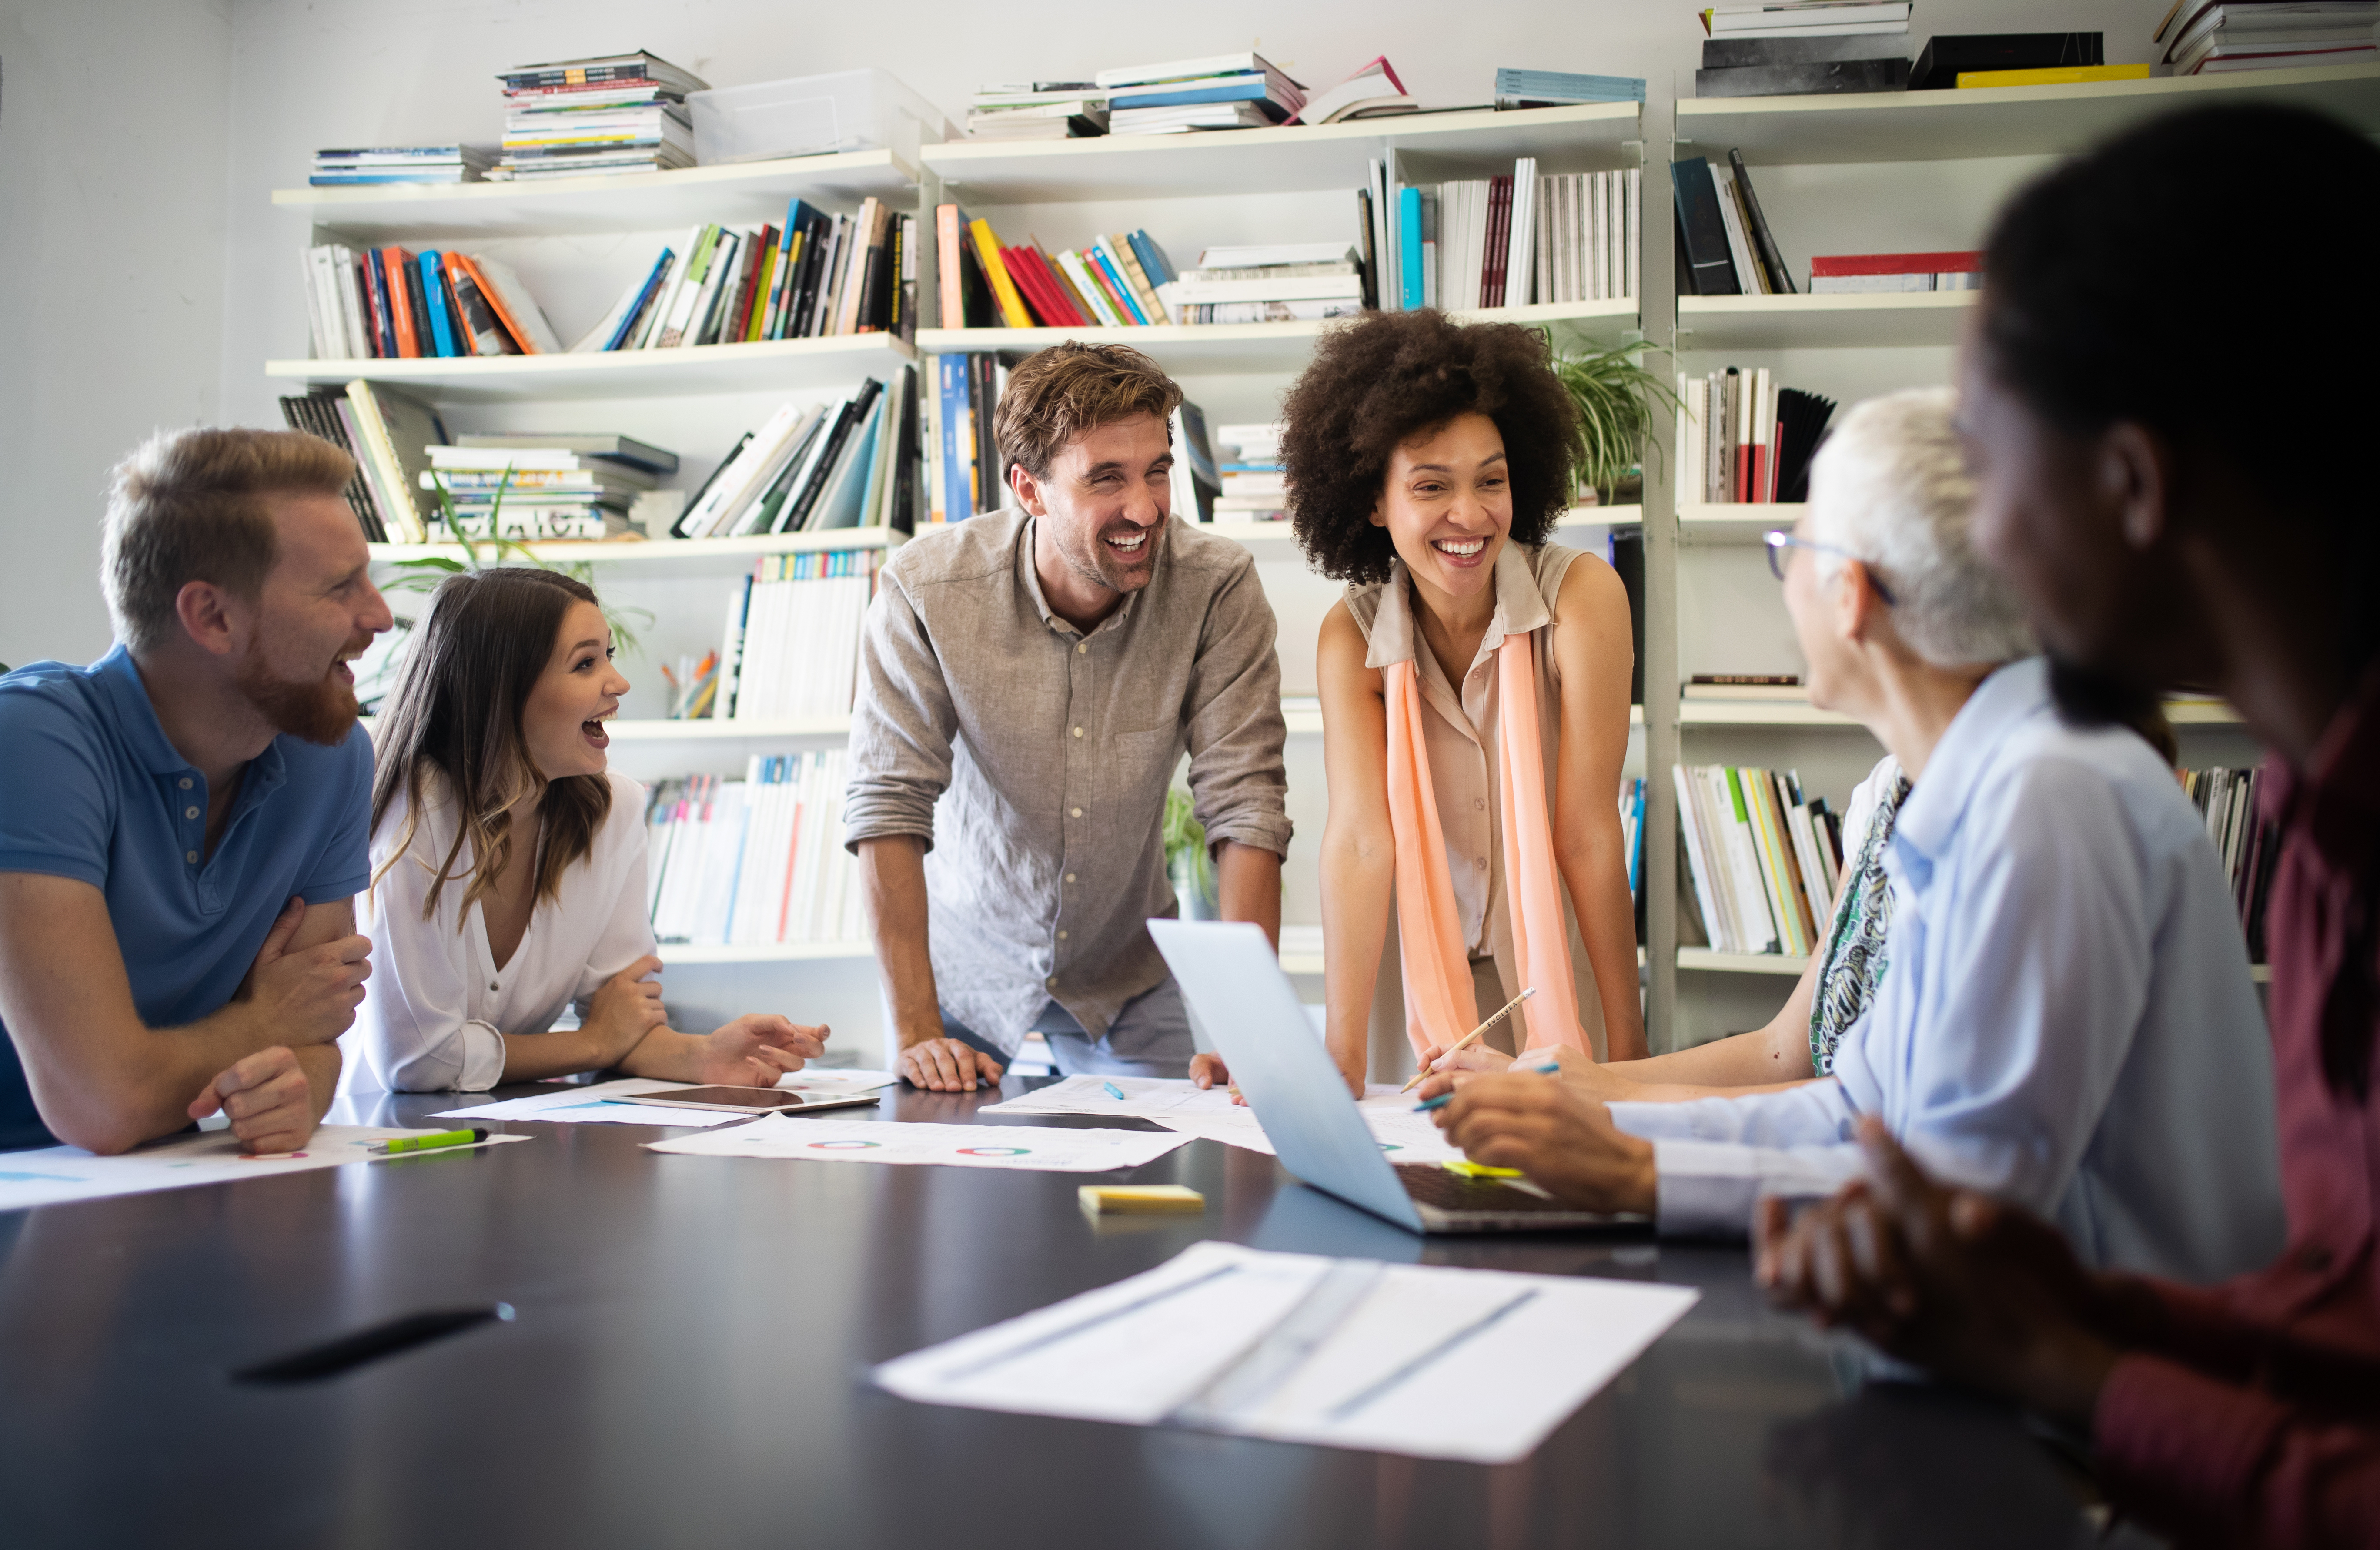 Cheerful coworkers, business people in office during company meeting